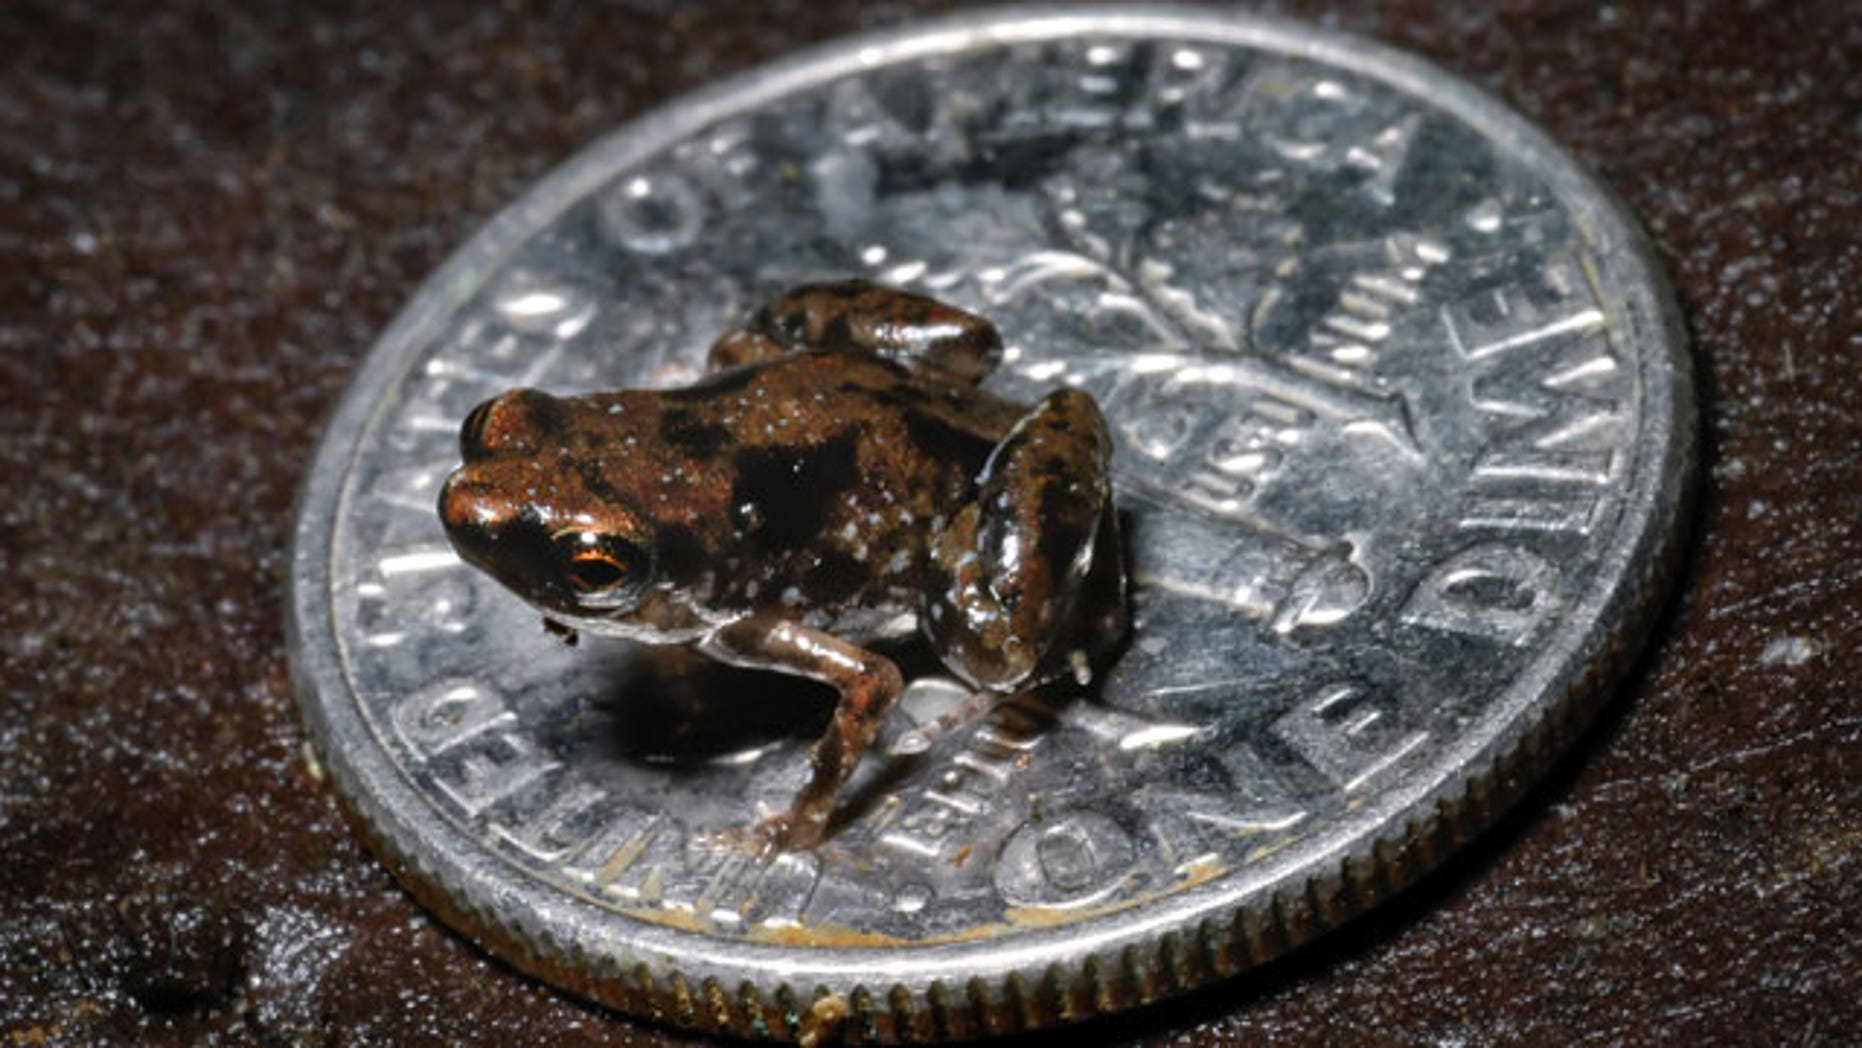 In this Aug. 2009 photo released by Louisiana State University, a frog sits on a U.S. dime in this photo taken by Louisiana State University herpetologist Christopher Austin near the Amau River in Papua, New Guinea.